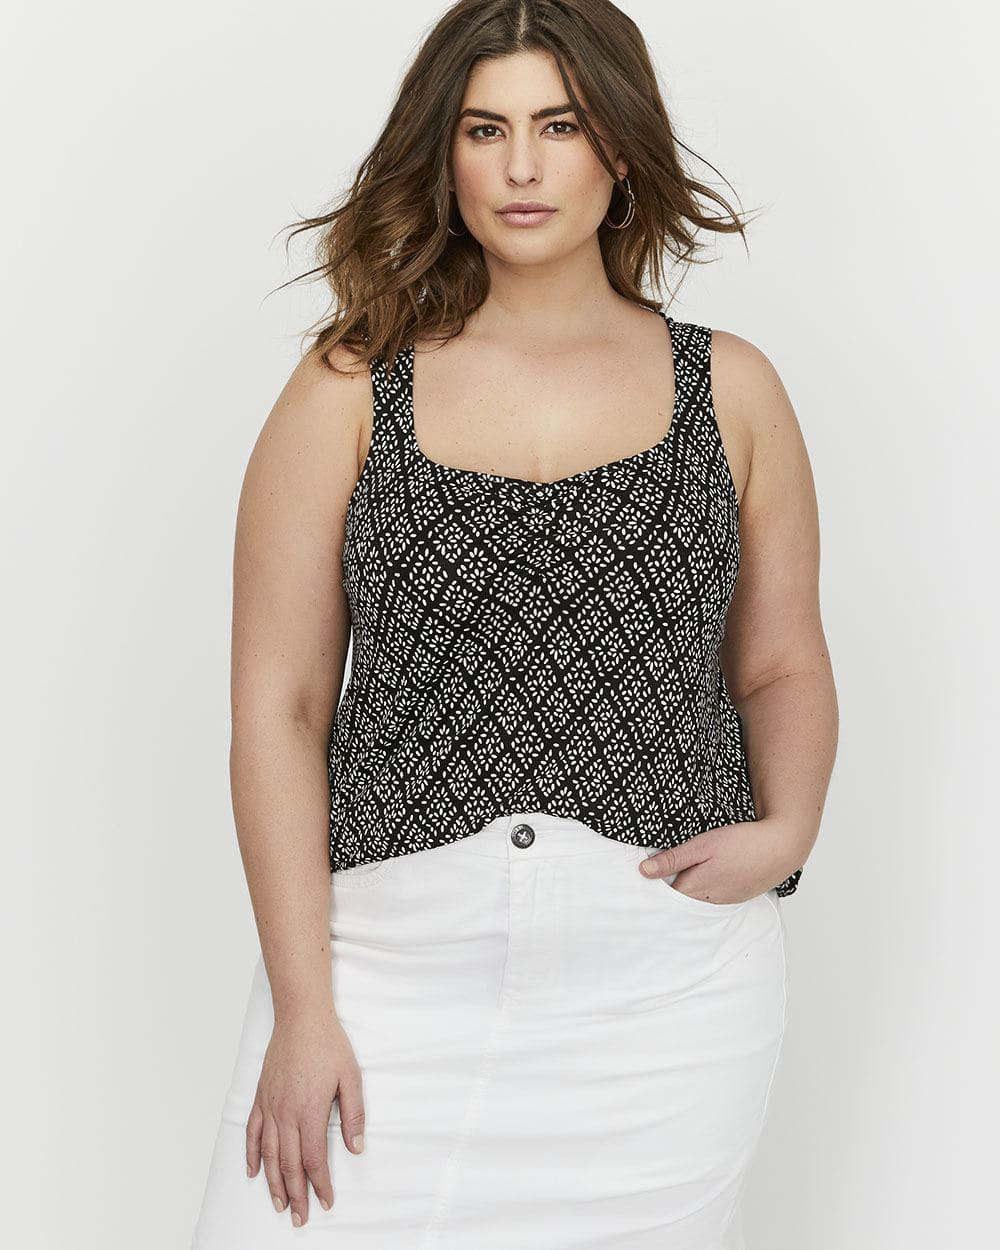 6a8006cb44bac Lyst - Addition Elle Michel Studio Printed Sweetheart Tank Top in Black